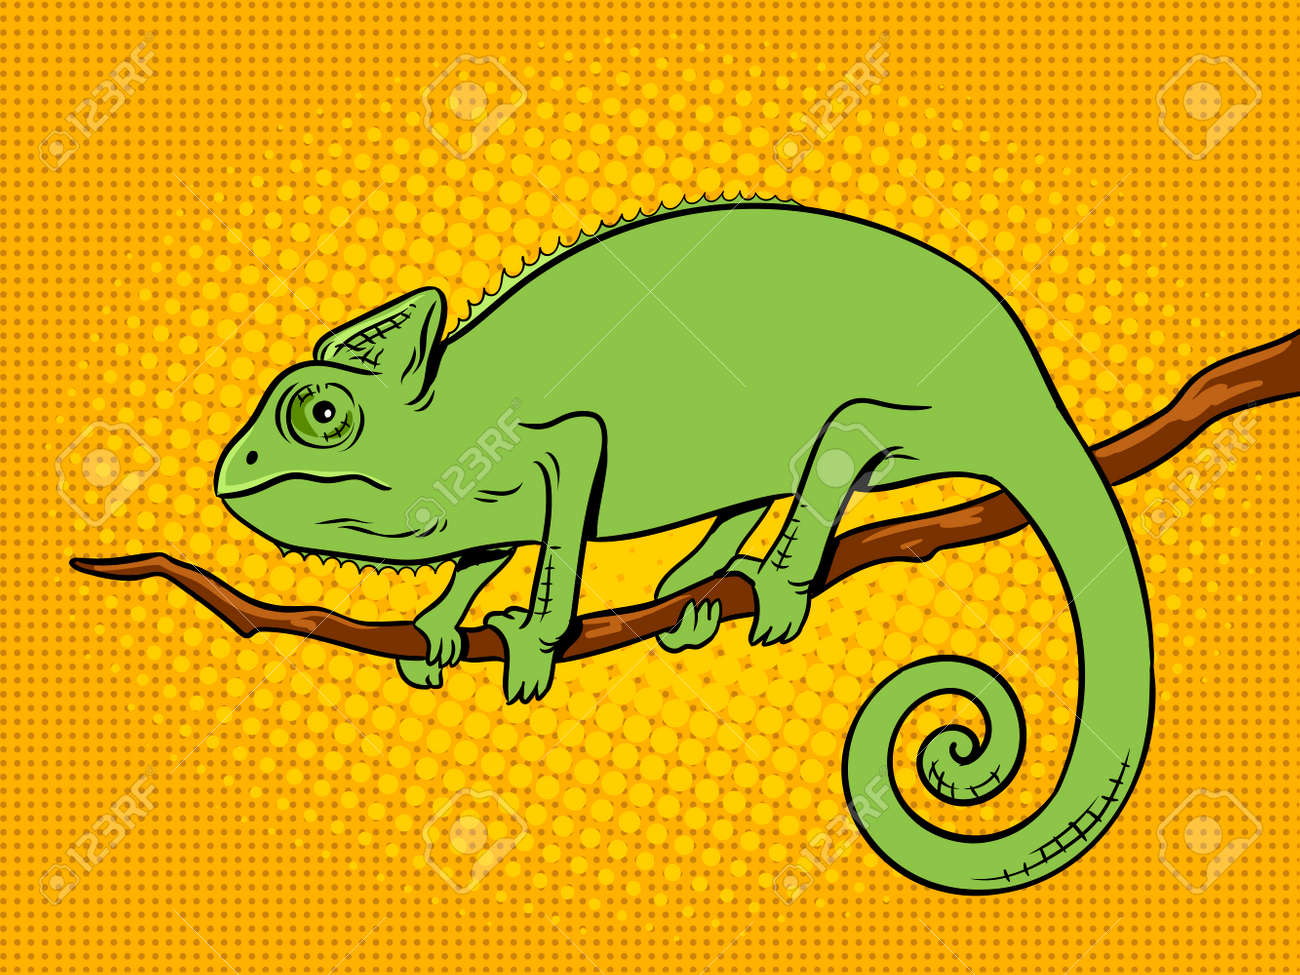 Chameleon Style Chameleon Animal Pop Art Retro Vector Illustration Color Background